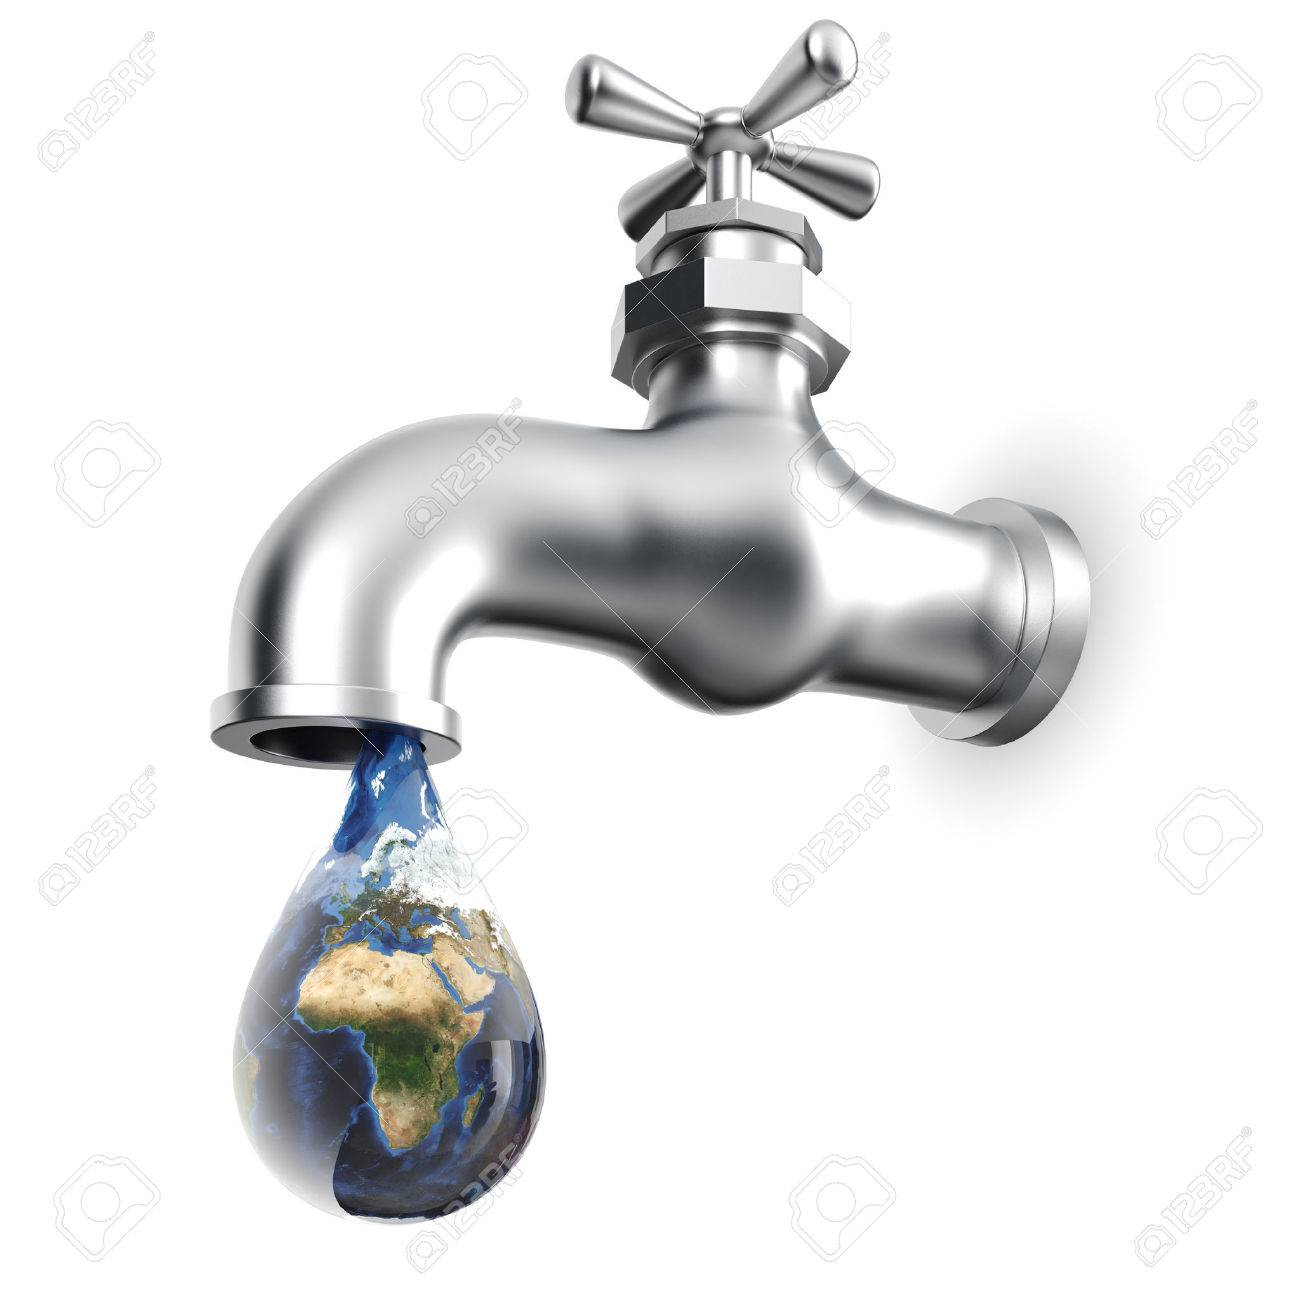 Earth Globe In Waterdrop Dripping From Tap Stock Photo, Picture And ...